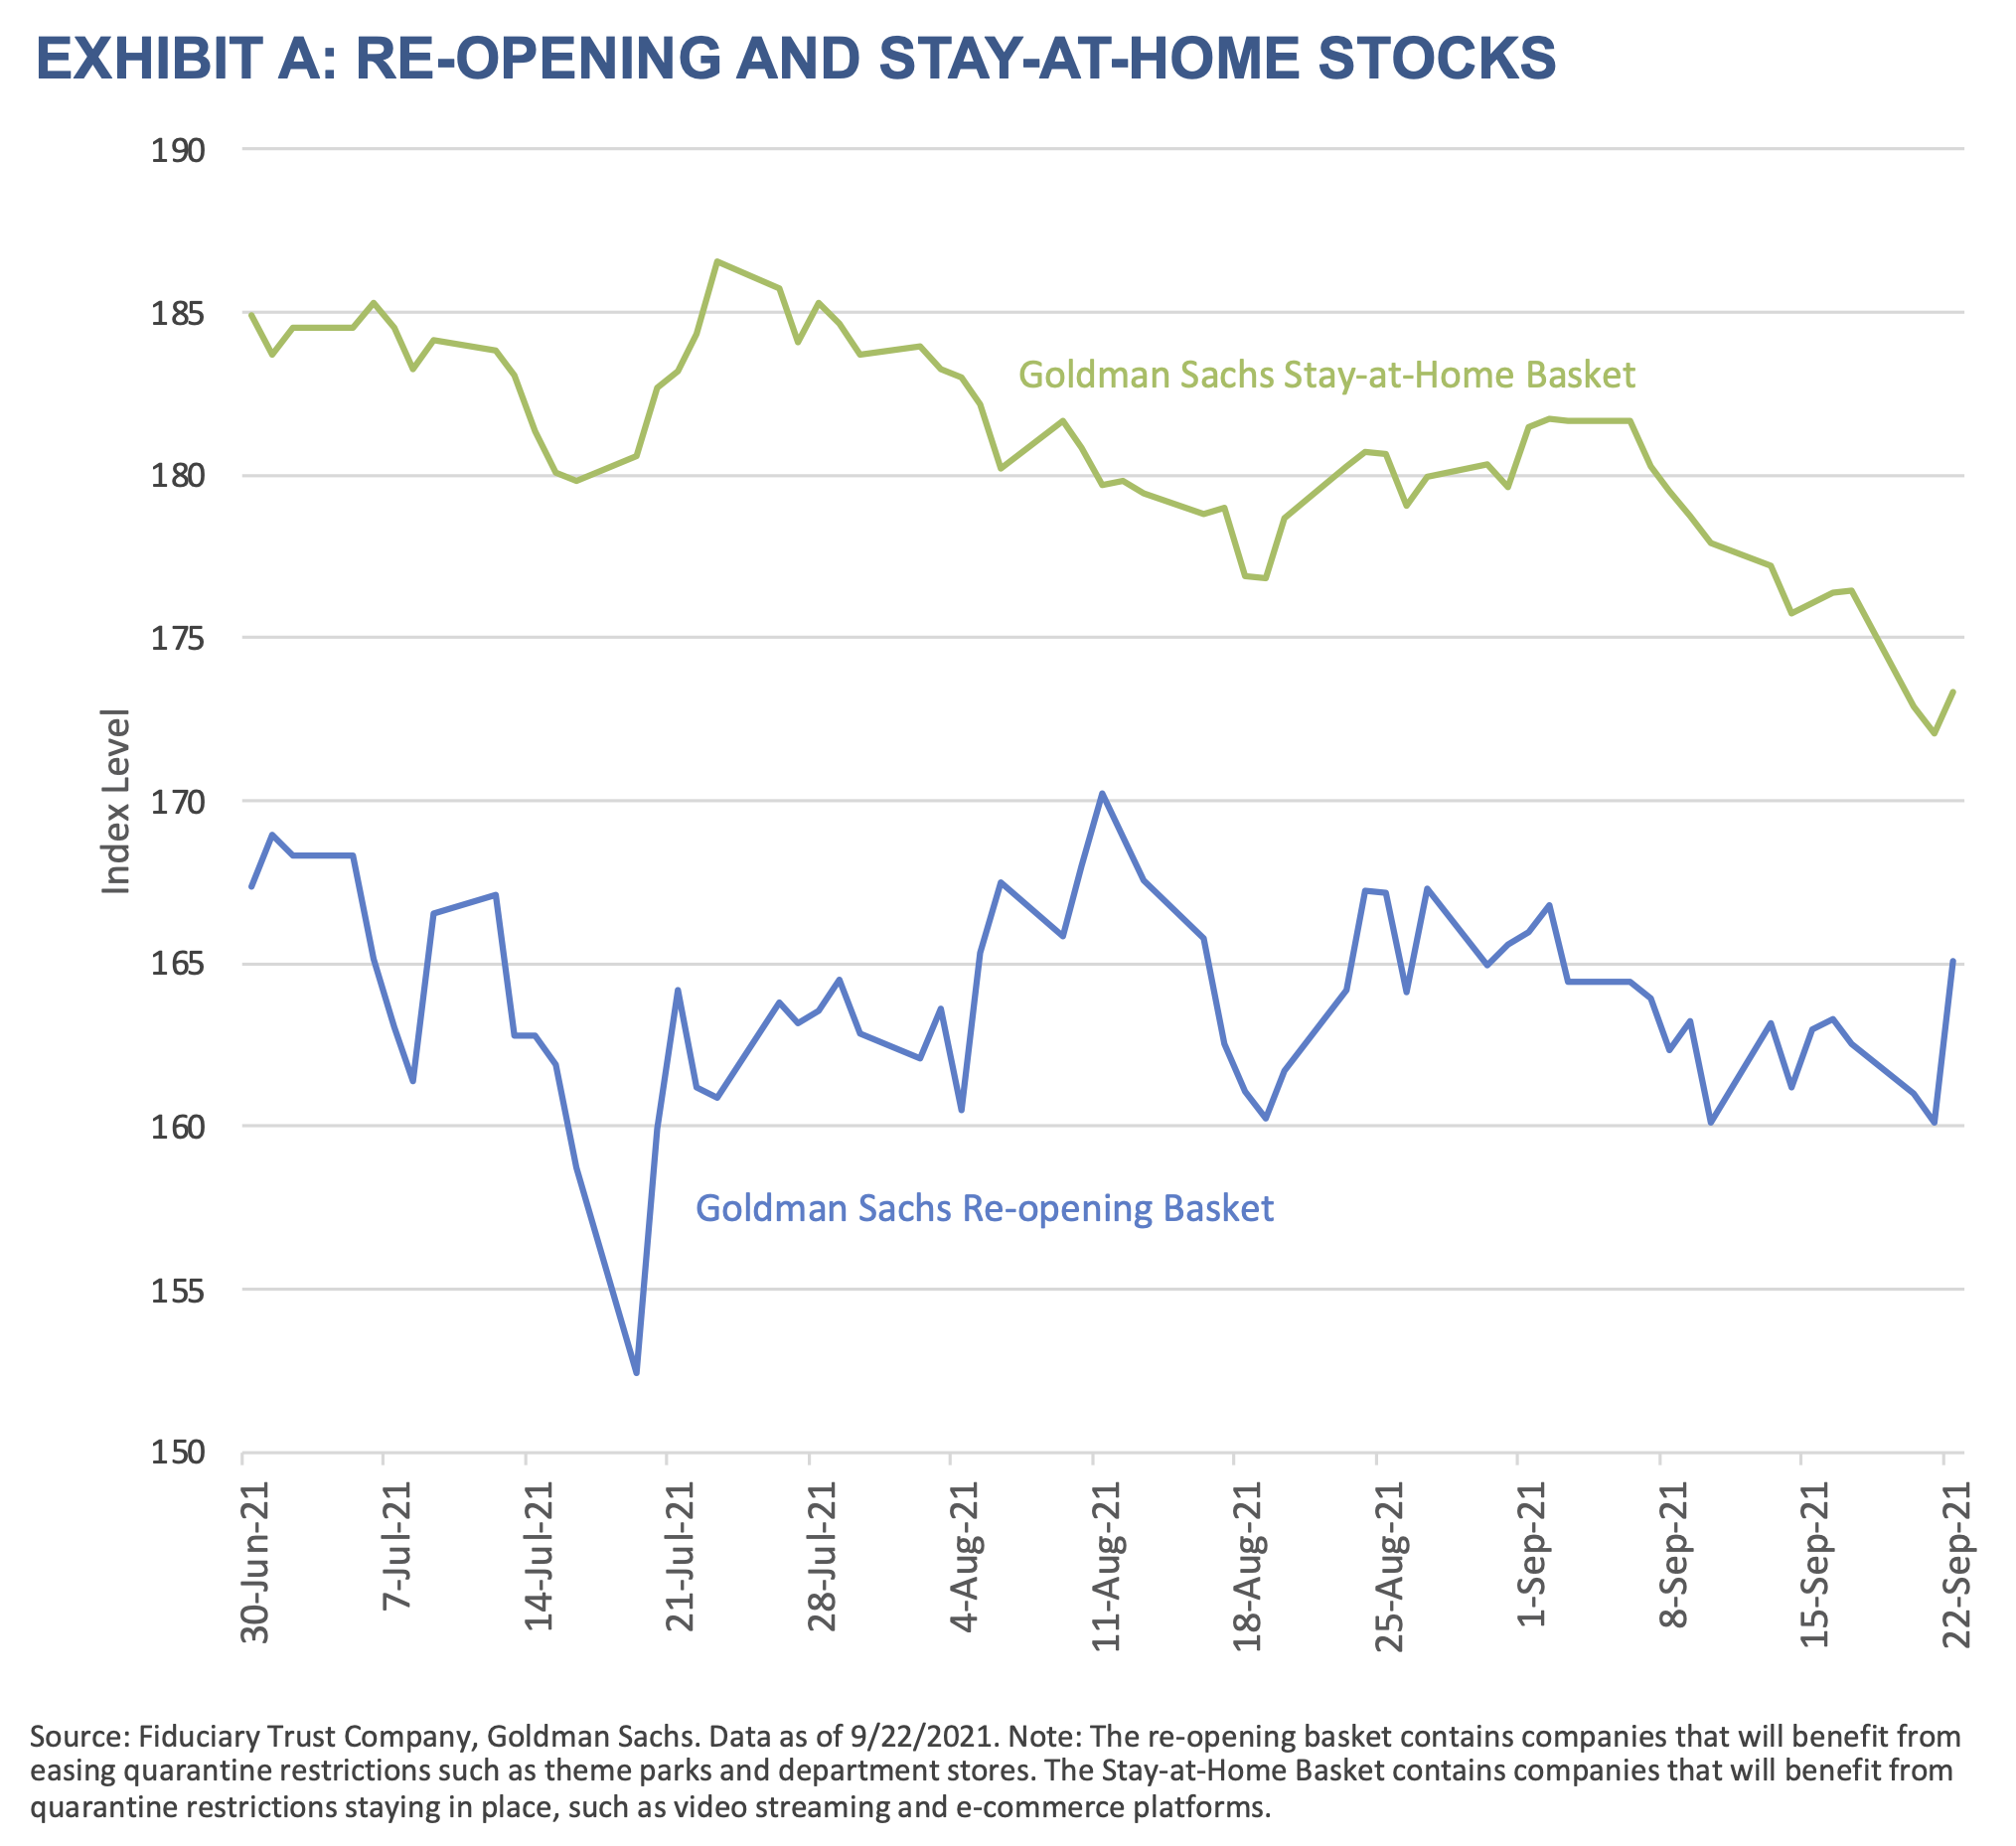 2021 Q4 Outlook-Exhibit A-Re-opening and Stay-At-Home Stocks